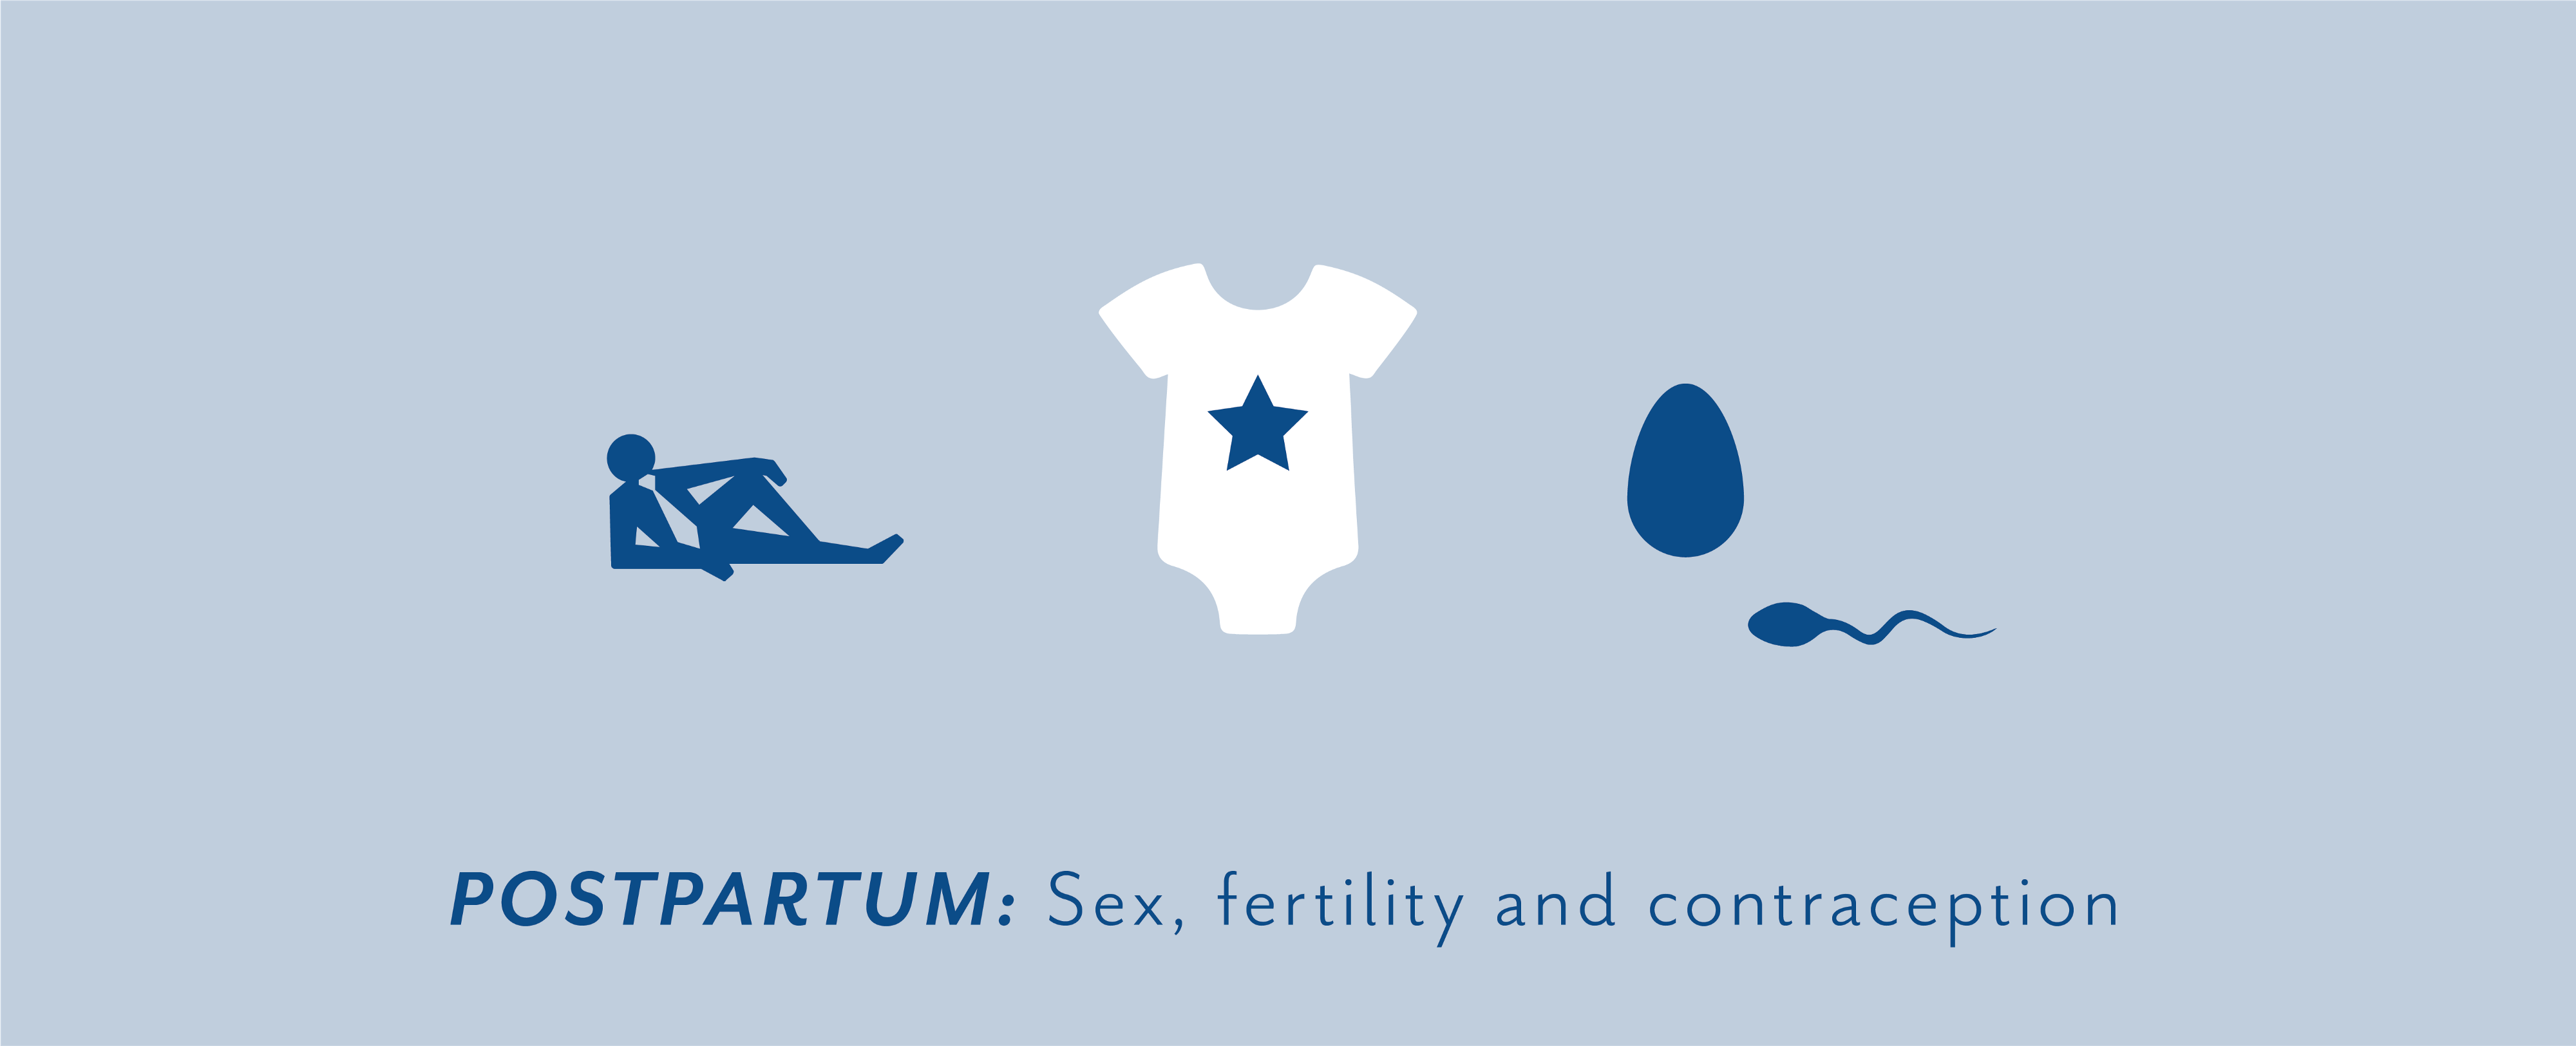 Postpartum: Sex, fertility, and contraception - Clued In - Medium